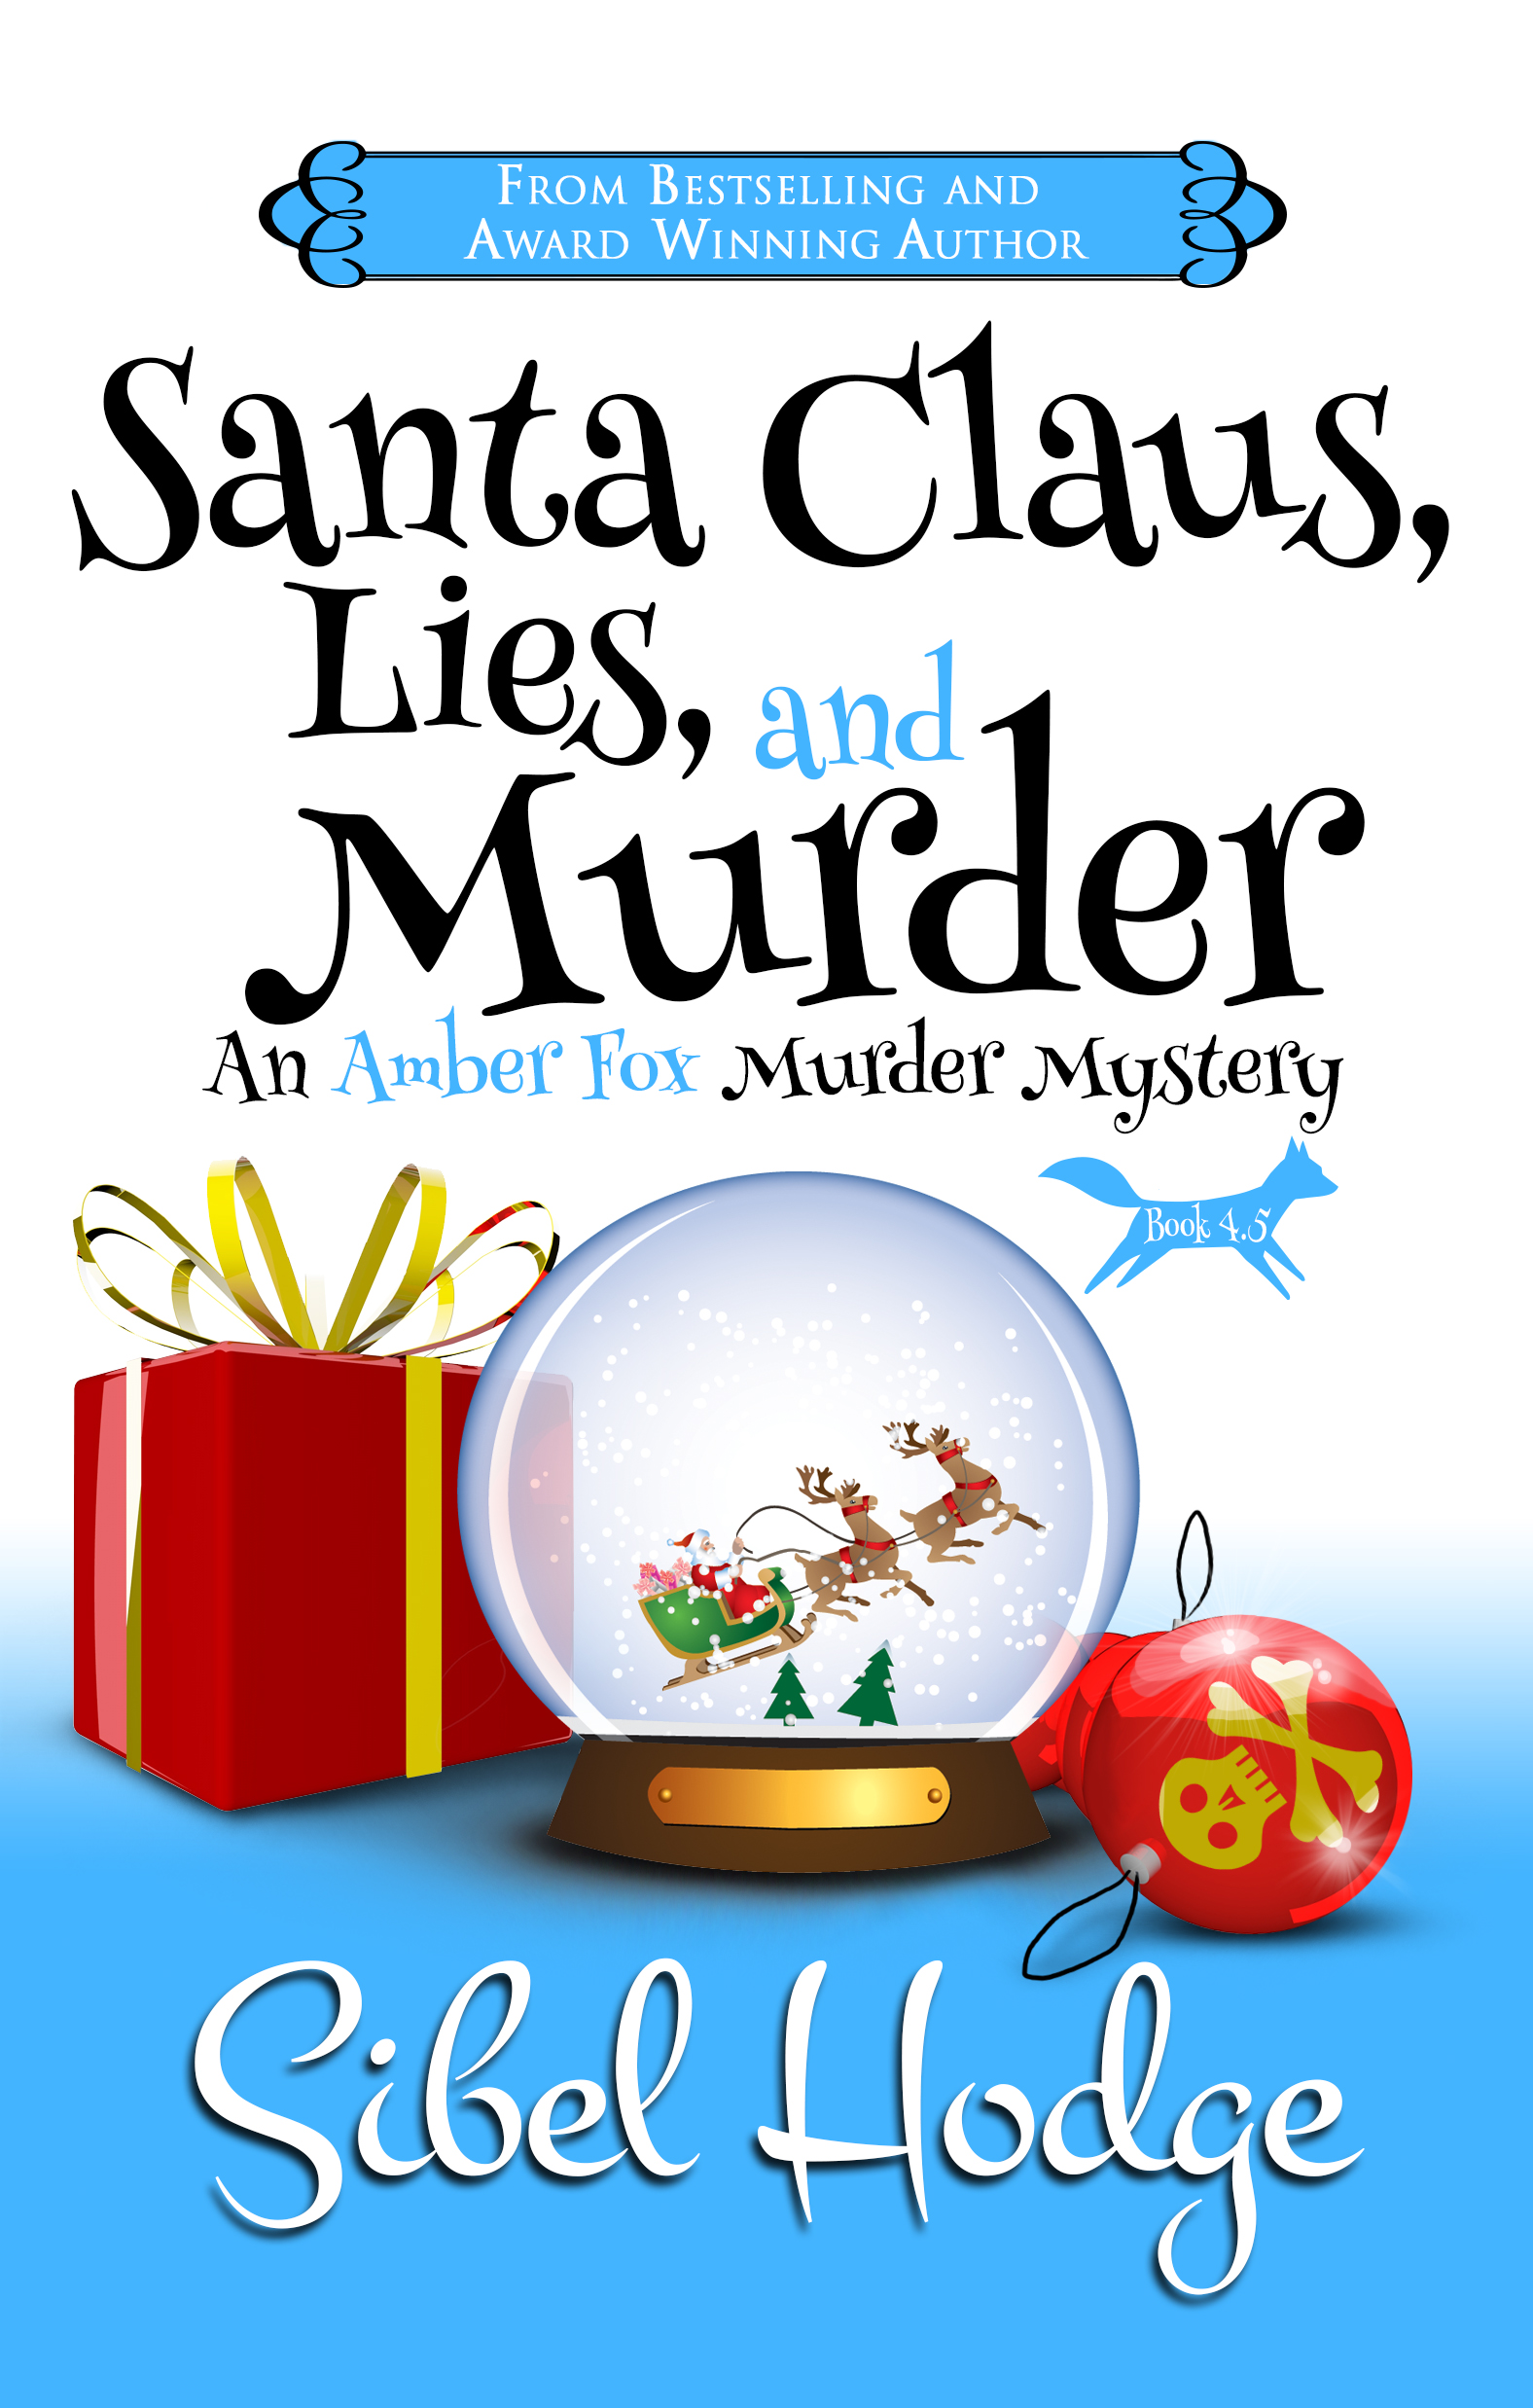 Santa Claus, Lies, and Murder final